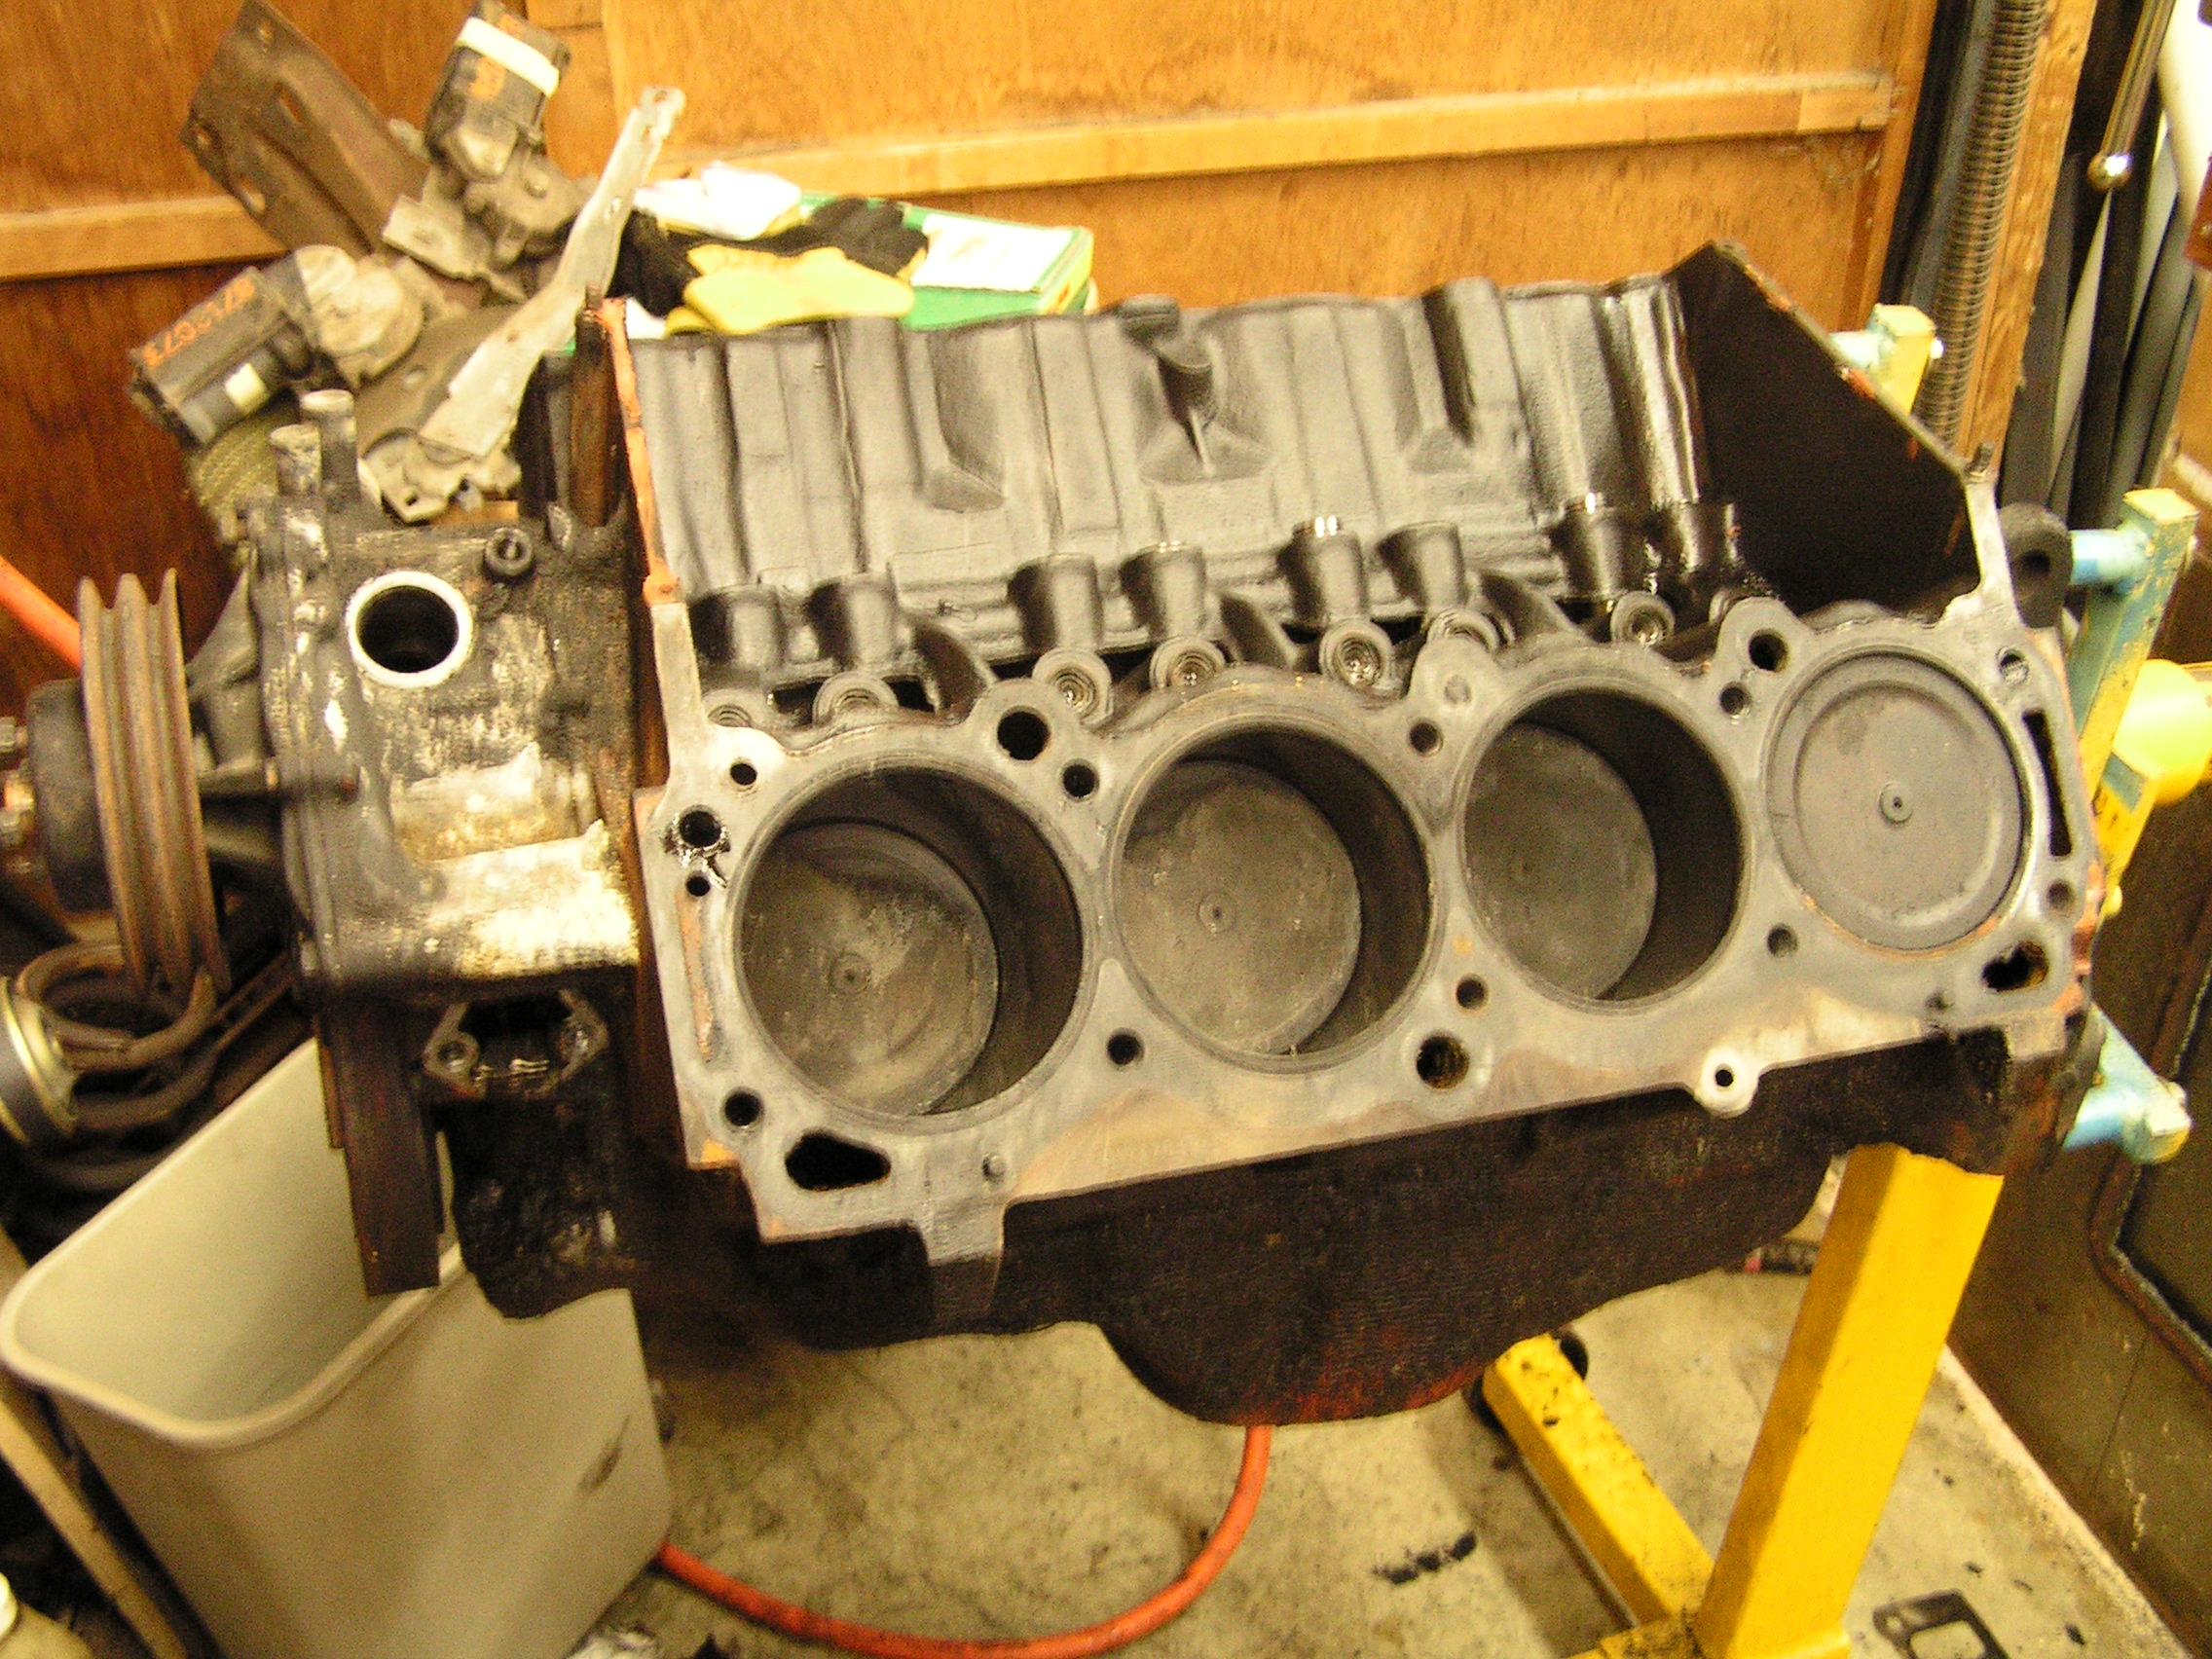 I have a 430 wild cat out of 67 riviera, I been try to ...